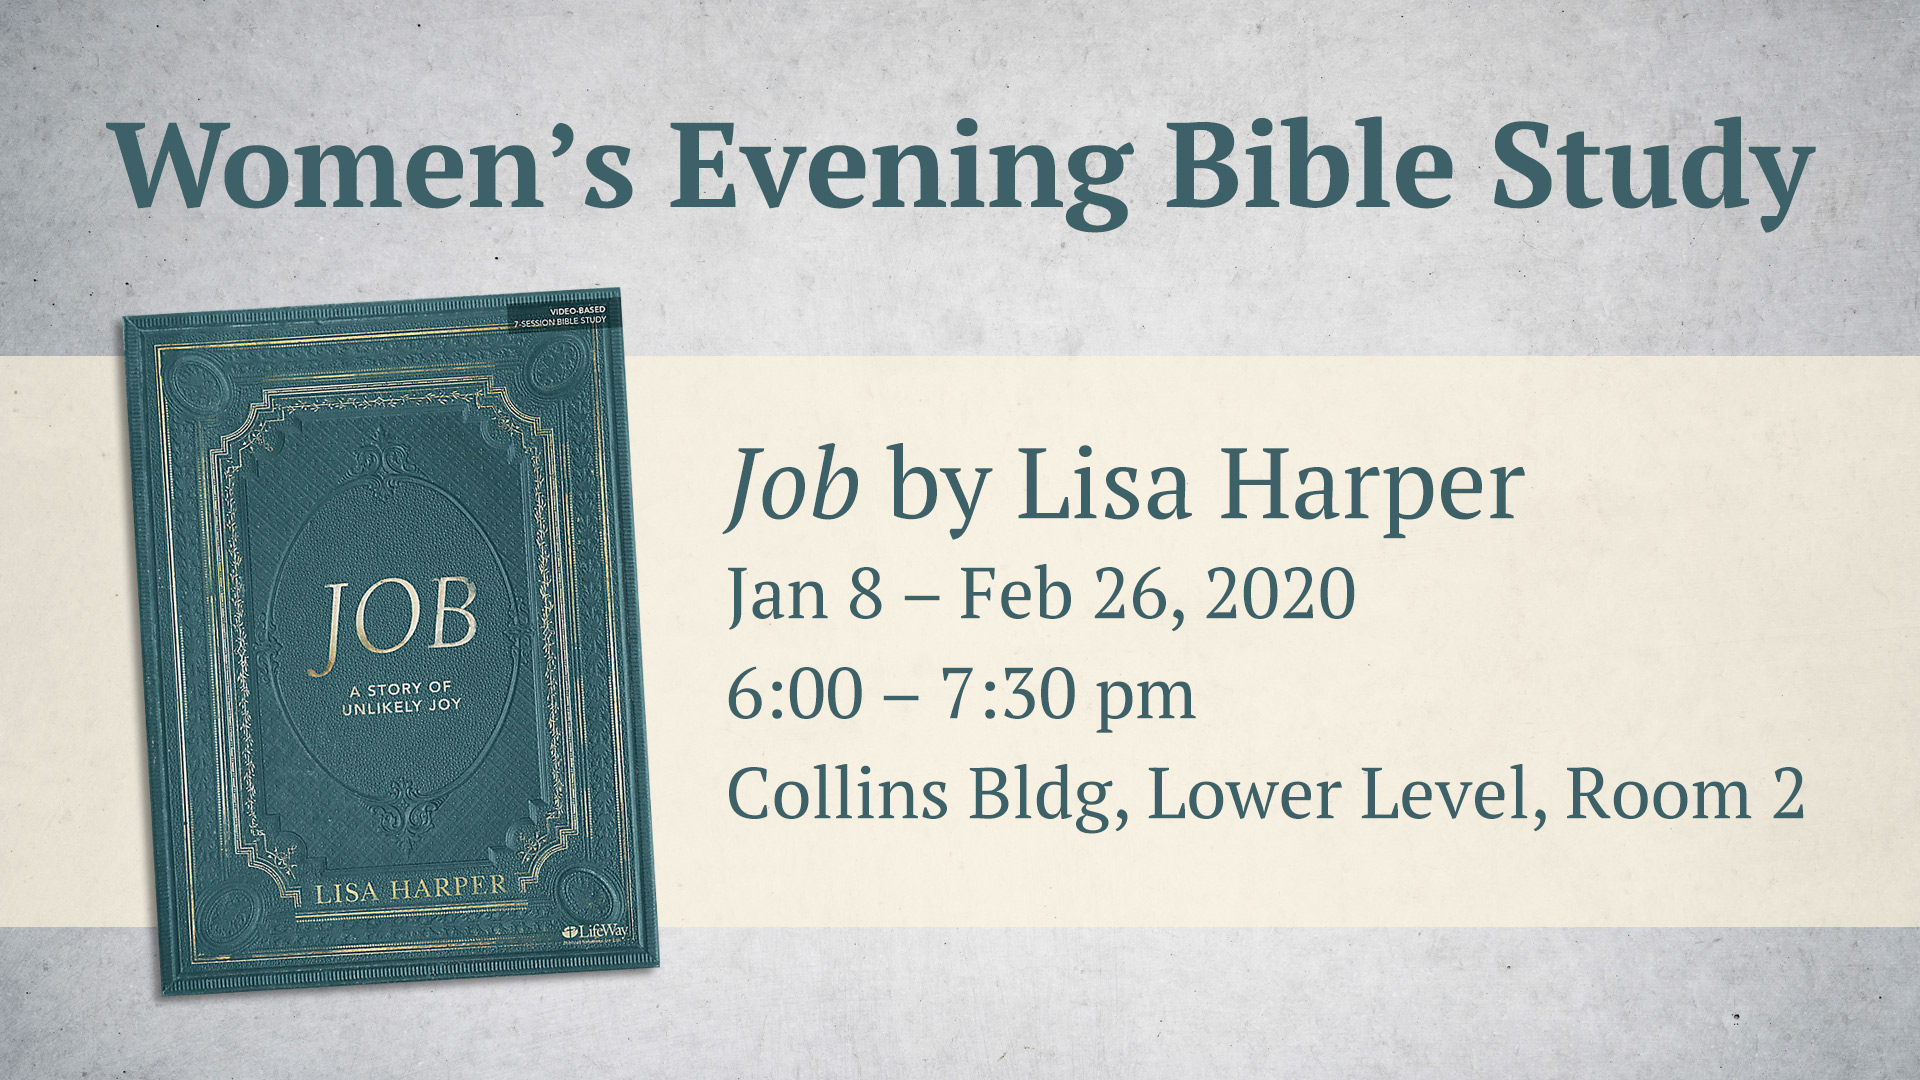 Women's Evening Bible Study